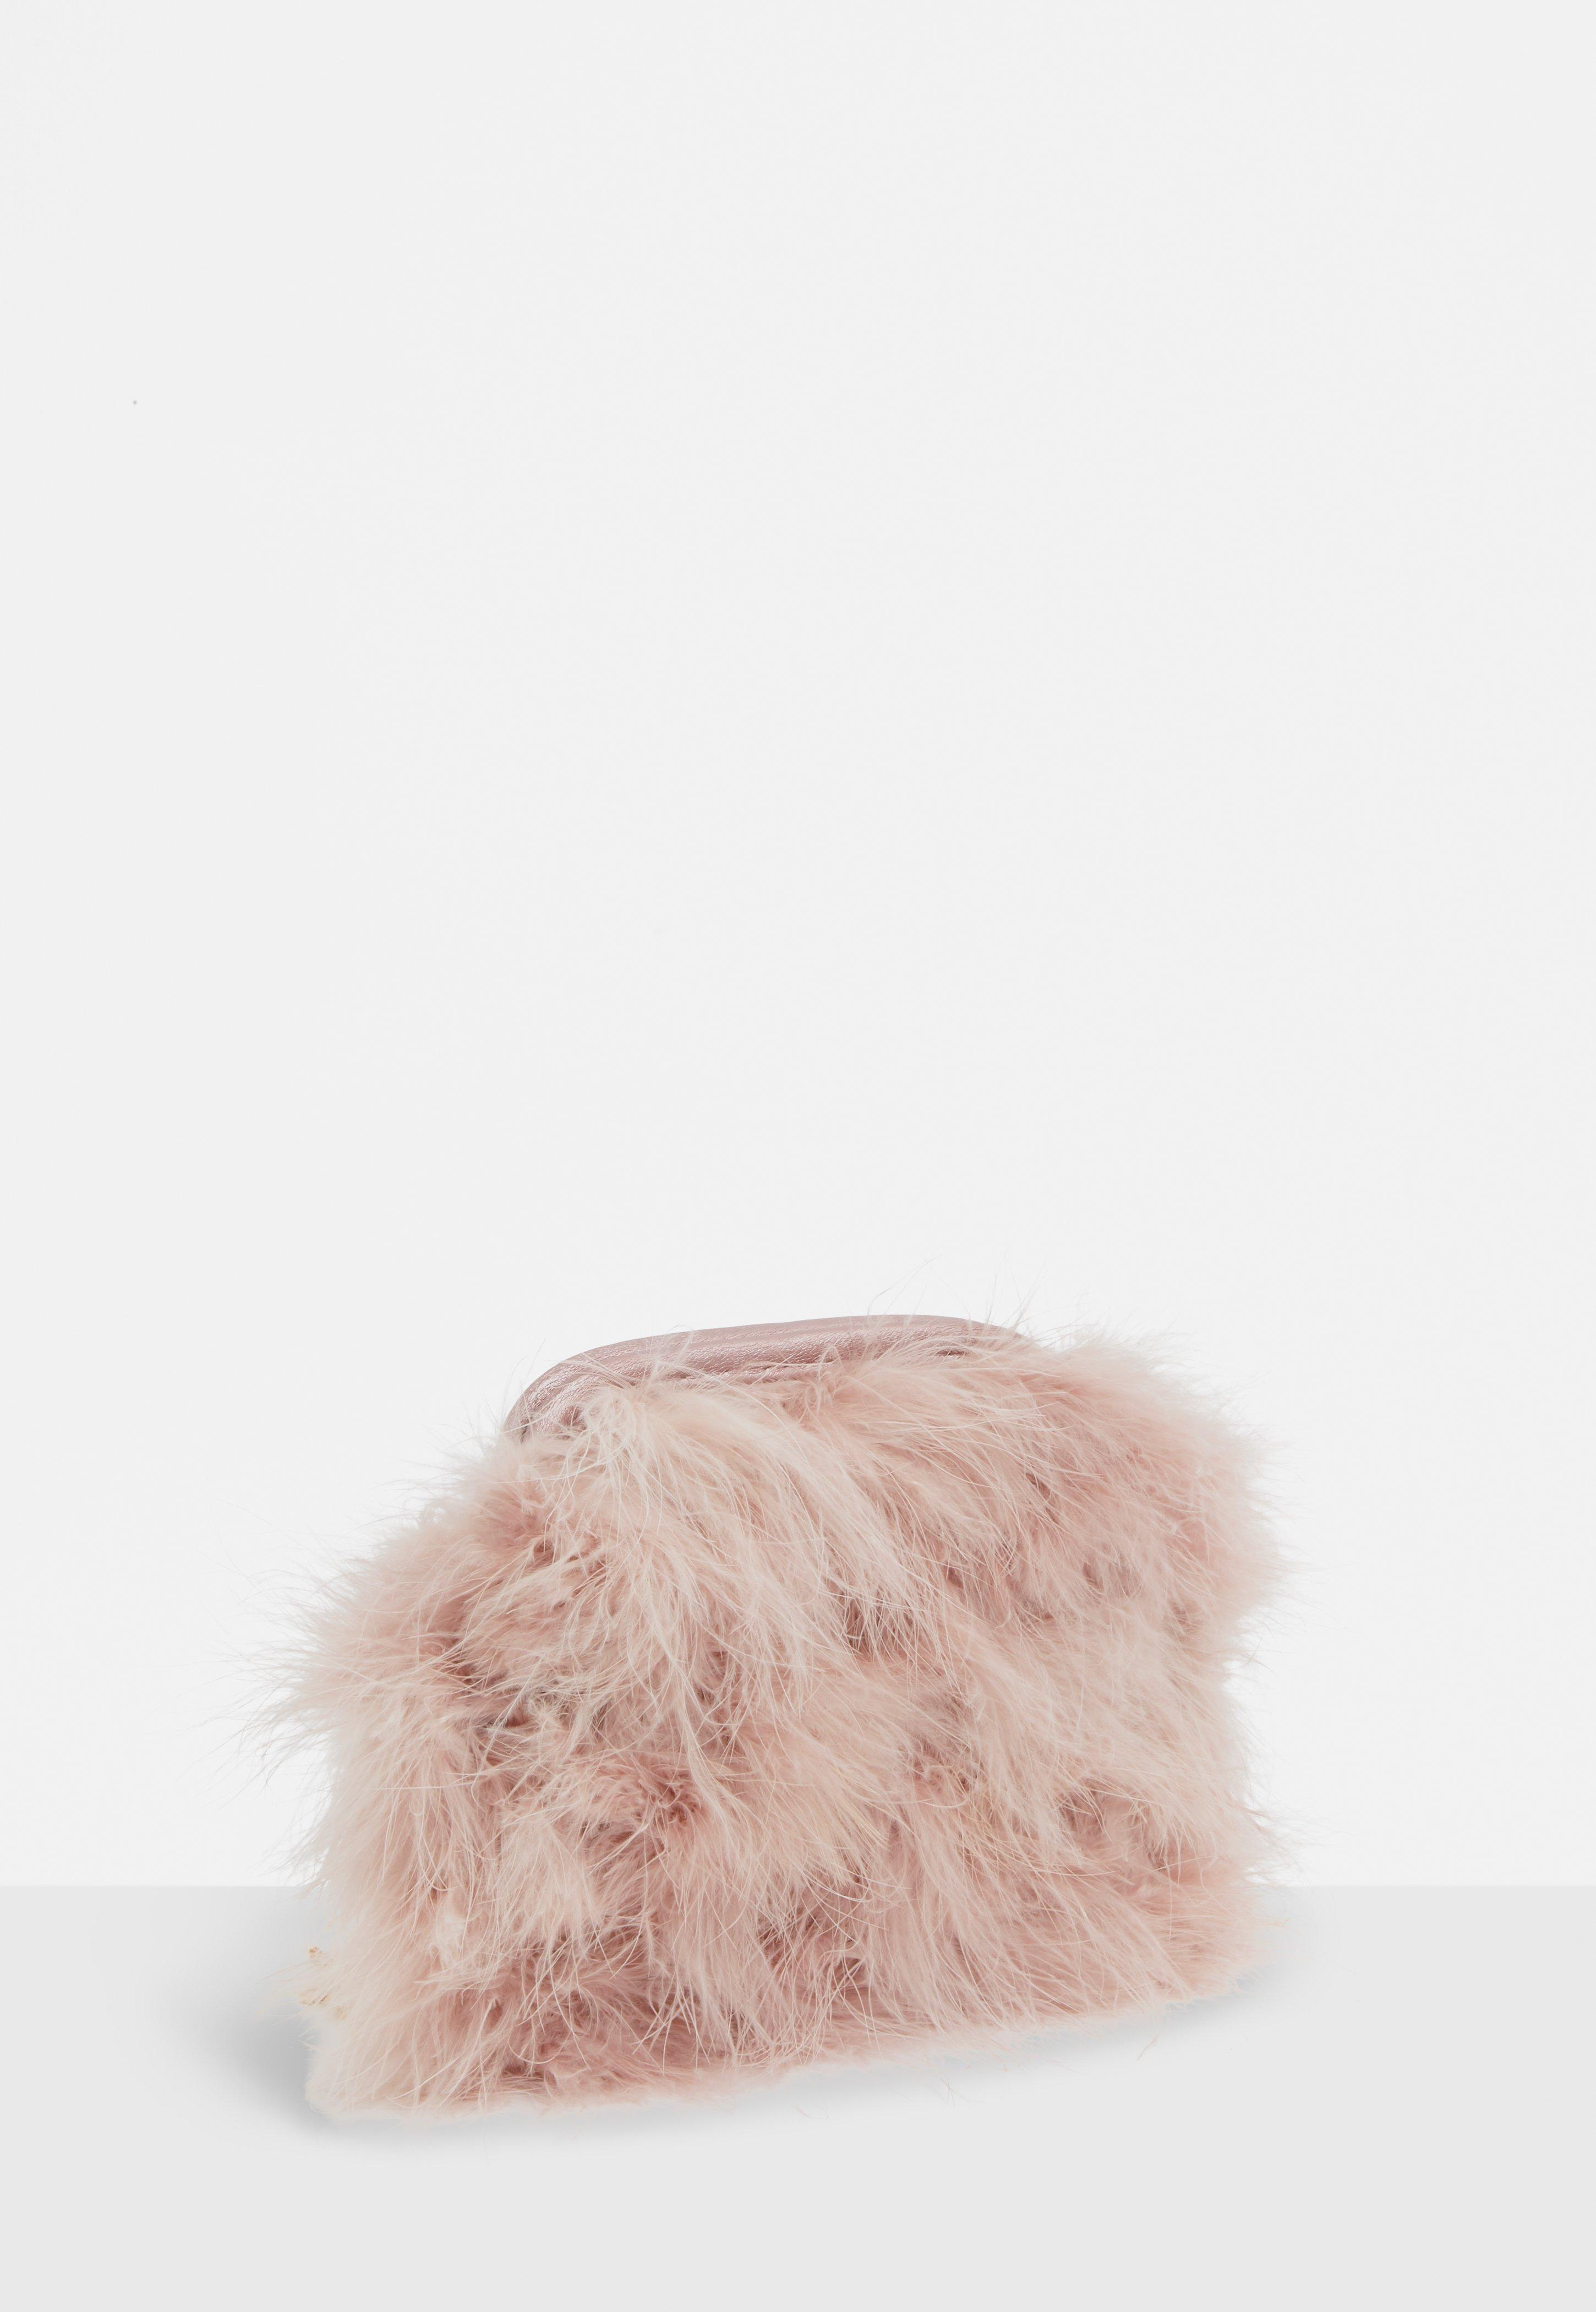 Lyst - Missguided Blush Round Feather Clutch Bag in Pink 70de6a3fcab6a